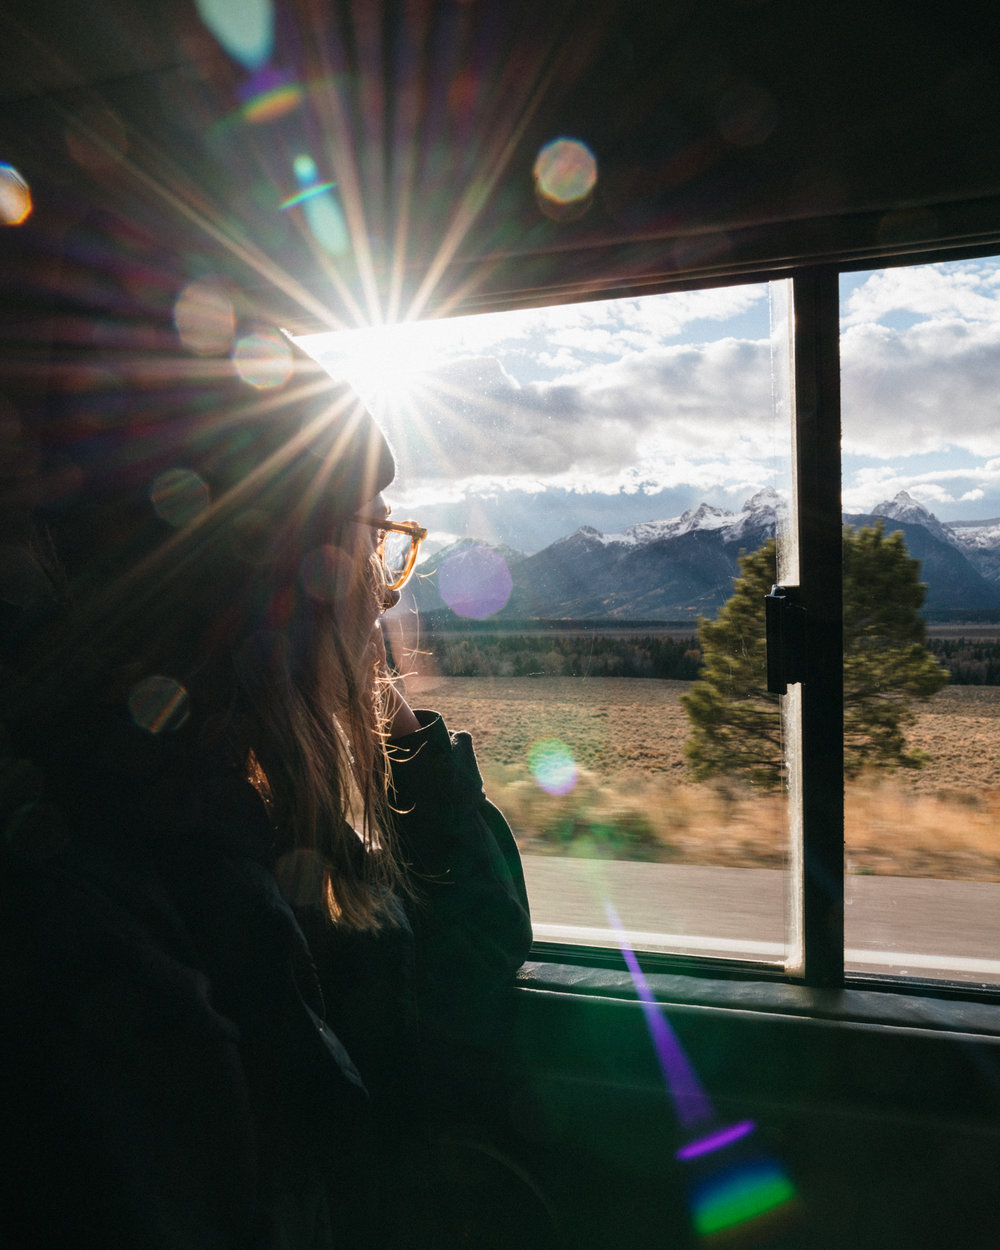 181007_LEEPSON_WYOMING_204-Edit.jpg